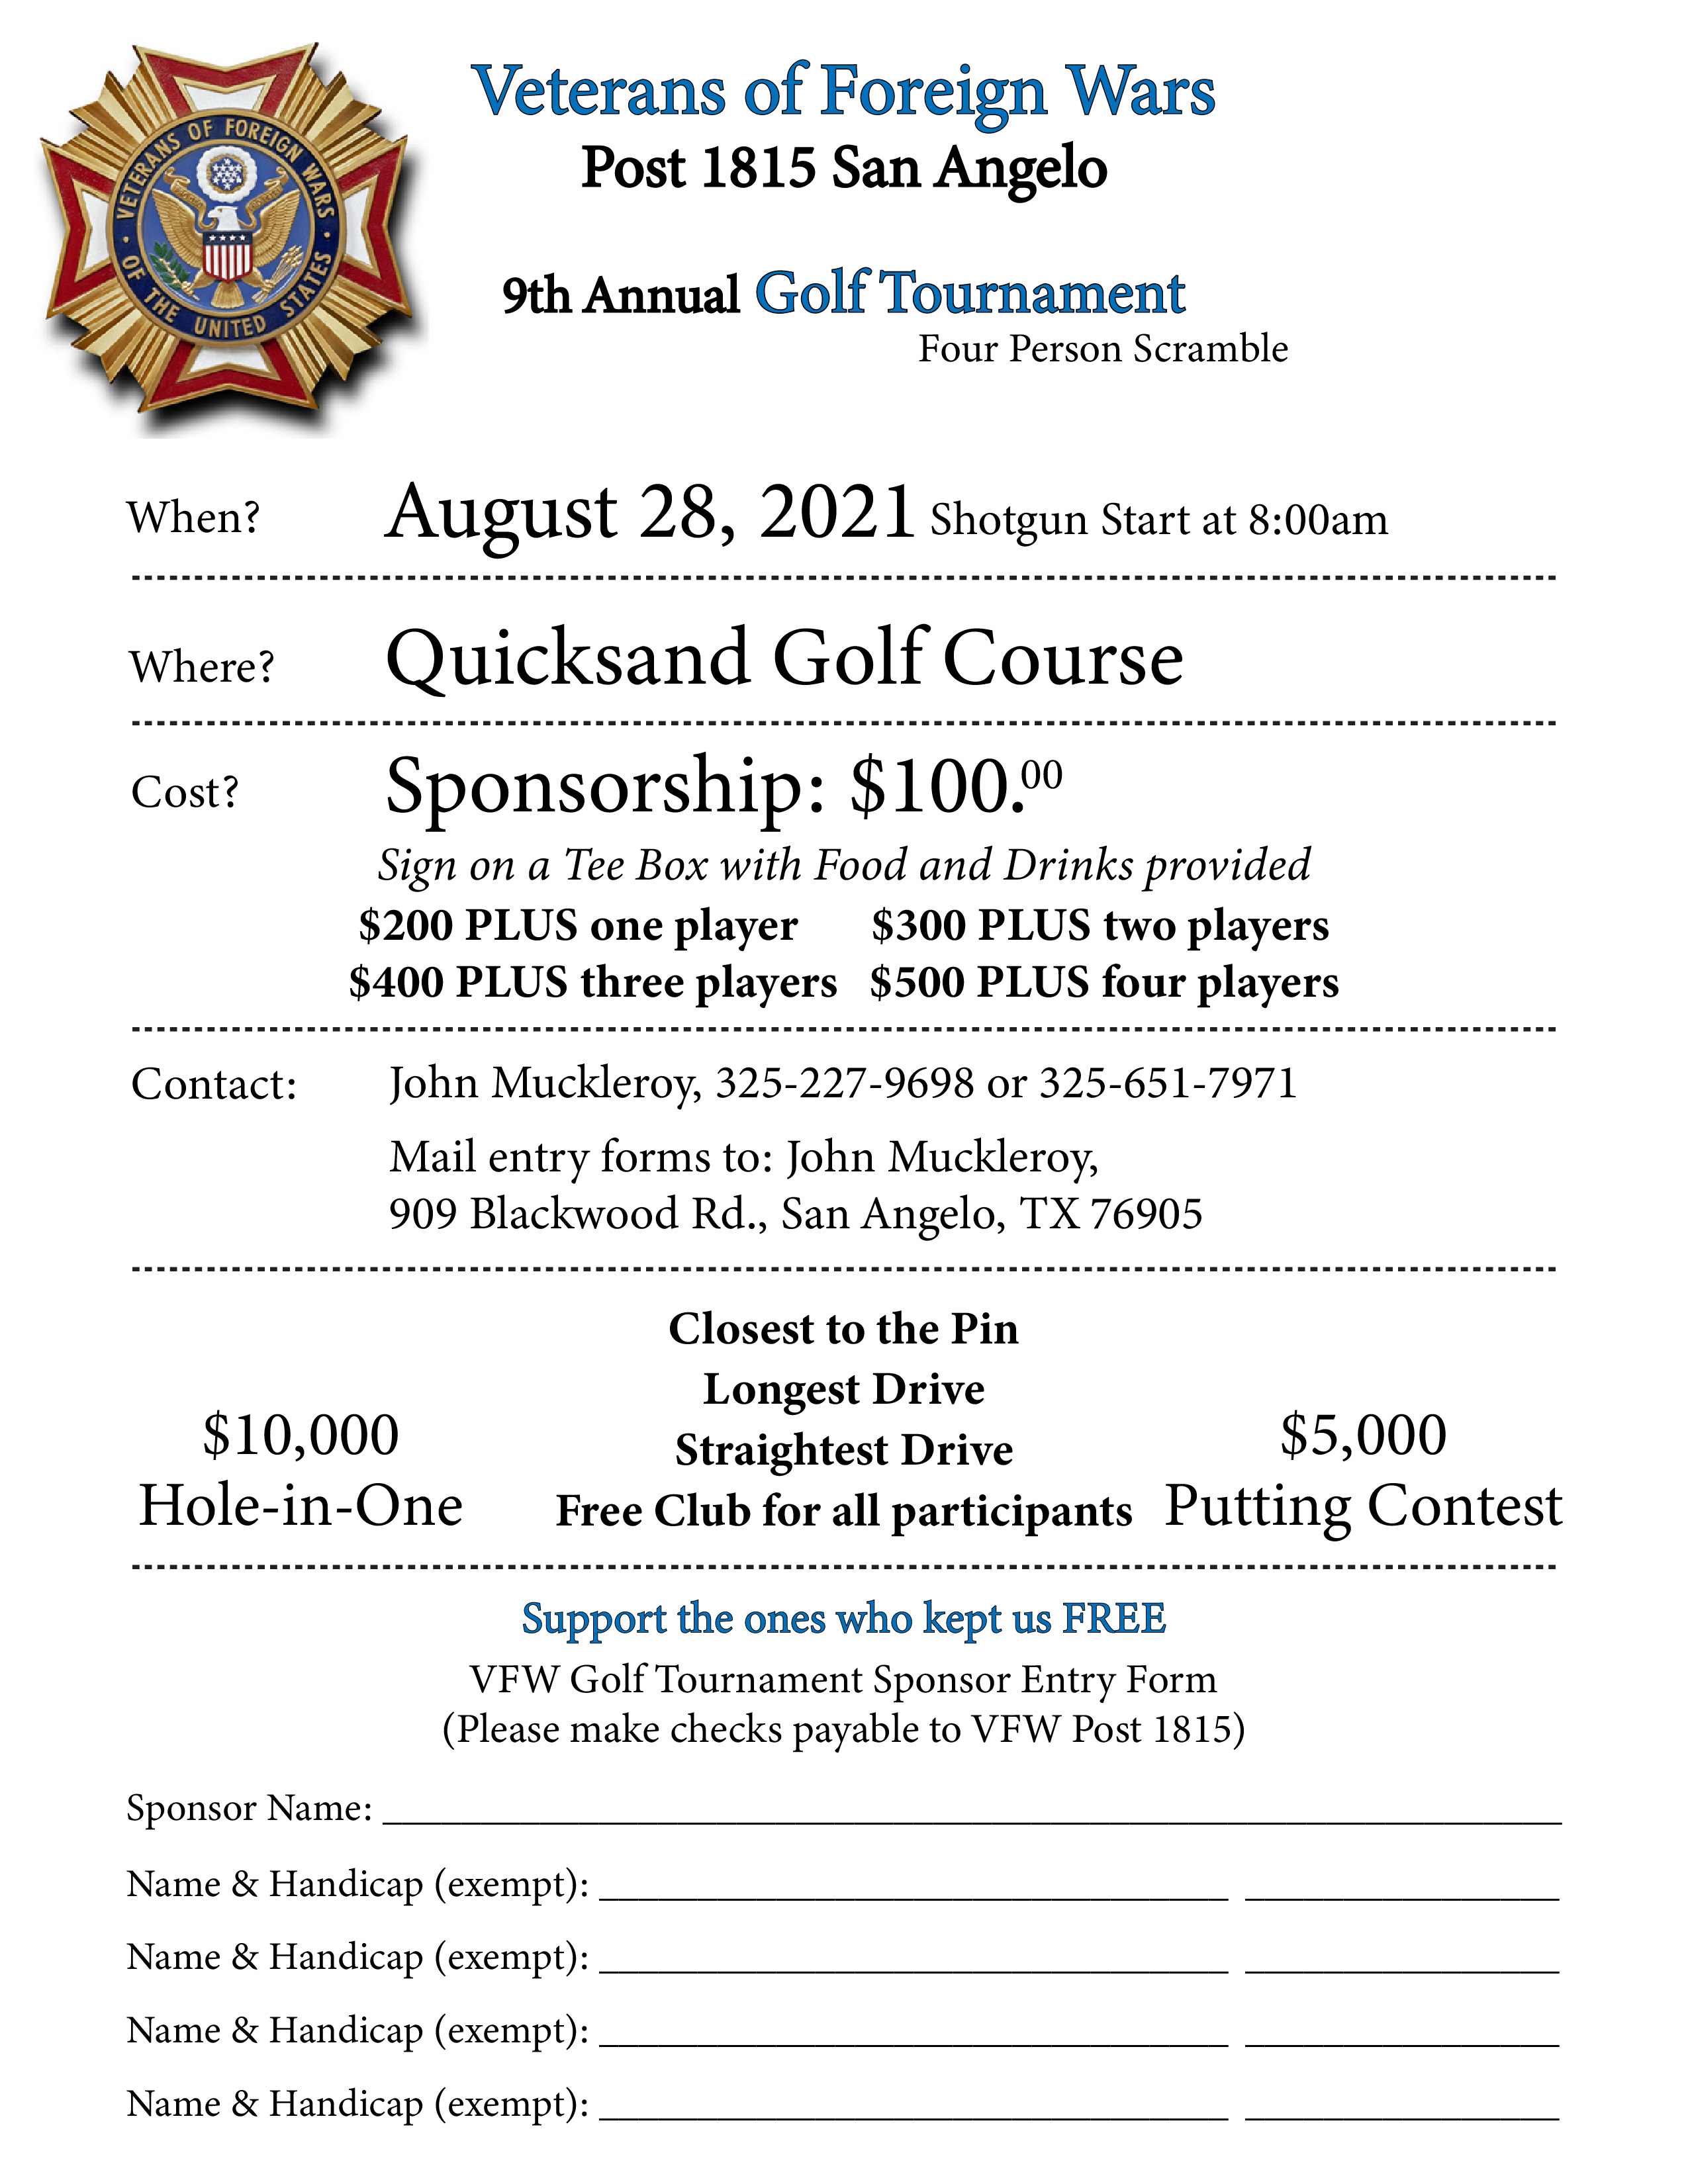 Veterans of Foreign Wars Golf Tournament form-01